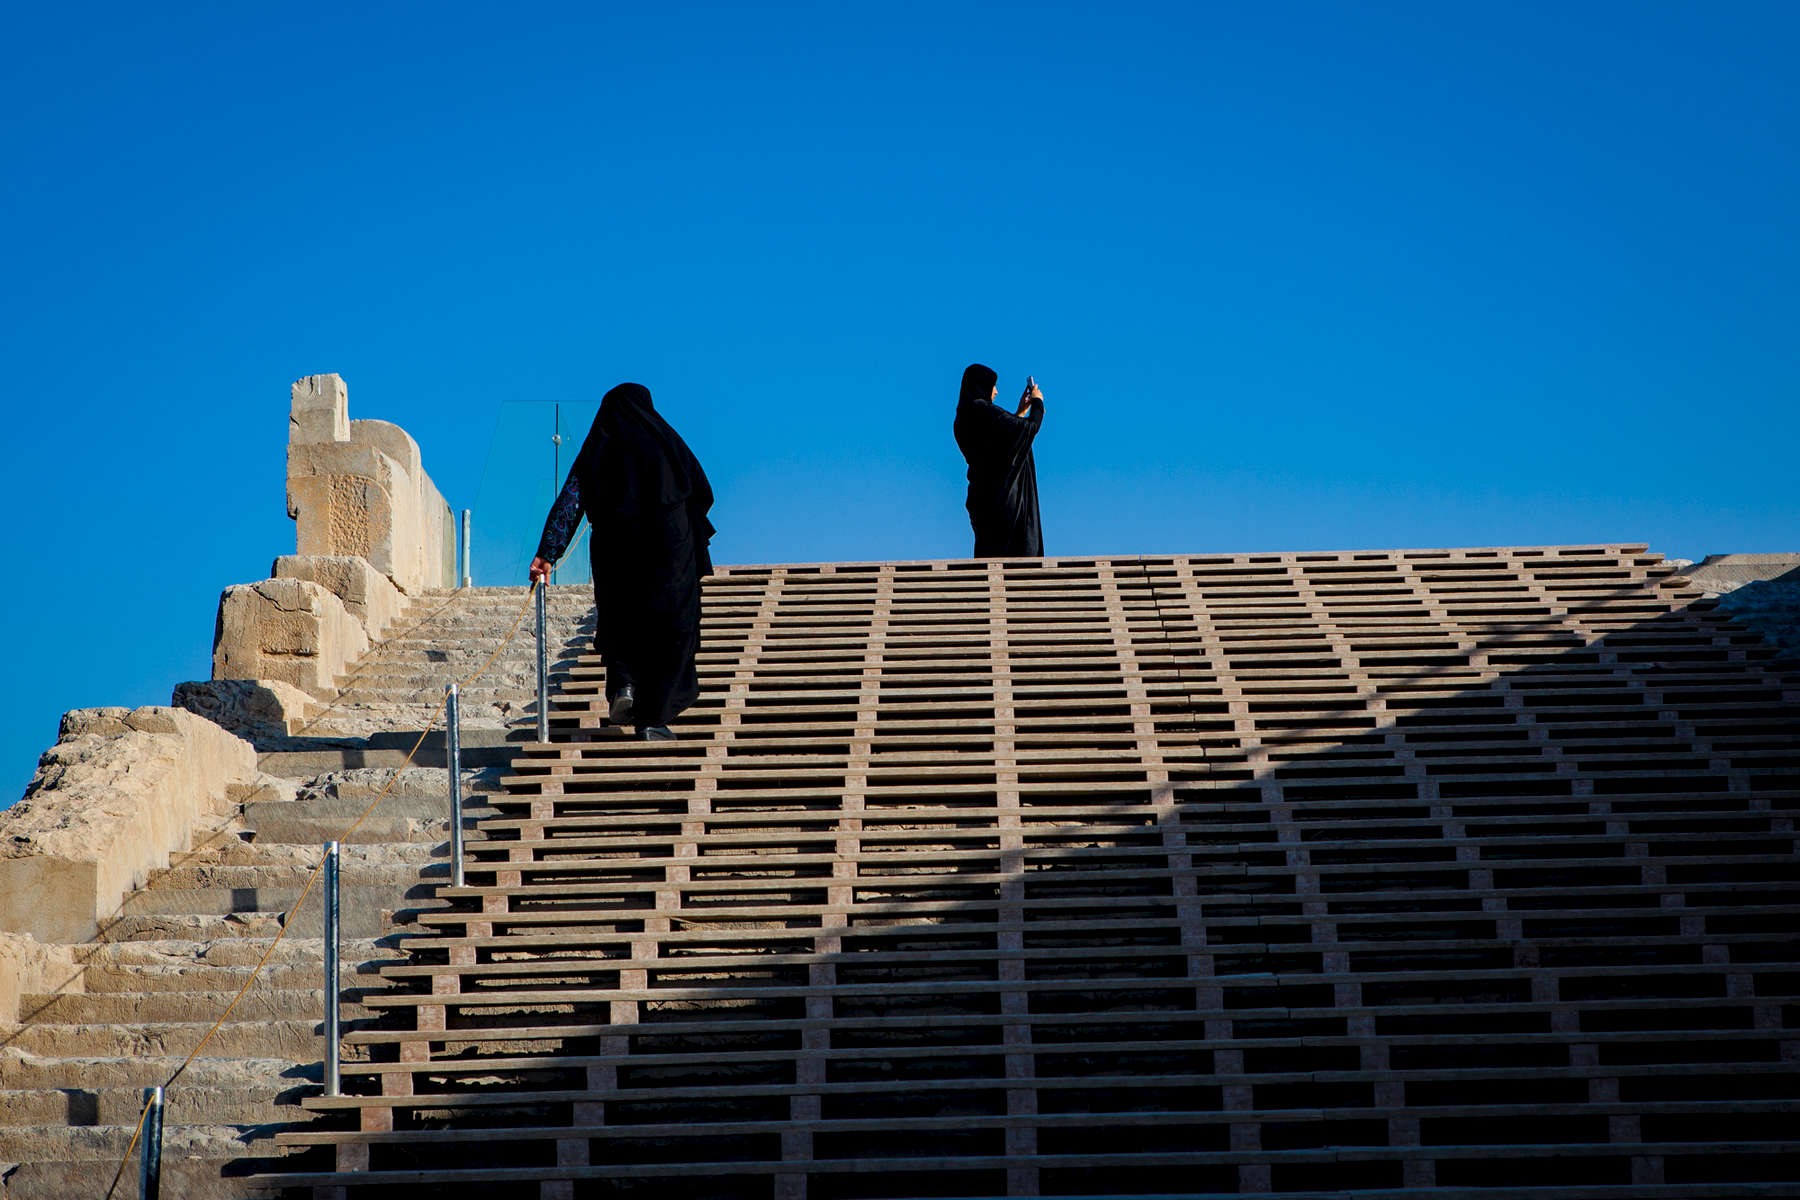 Ascending the Grand Stairway at Persepolis.